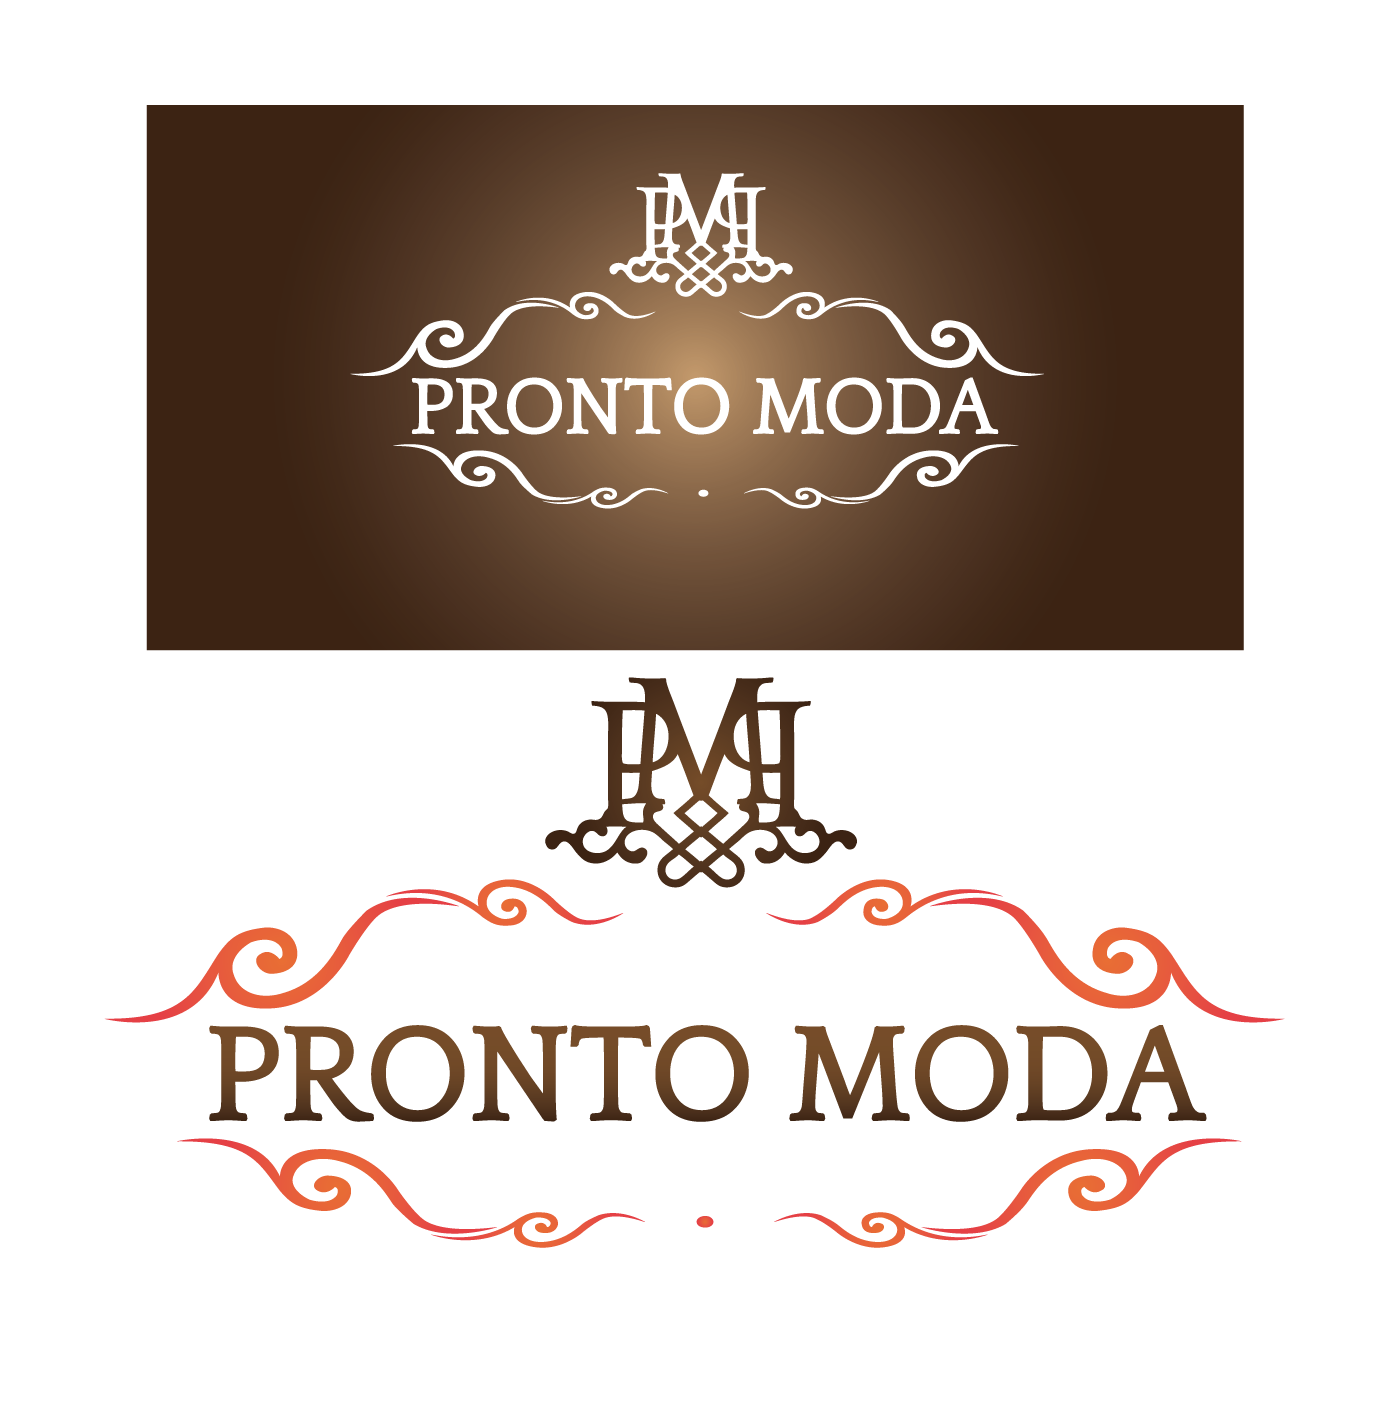 Logo Design by 354studio - Entry No. 74 in the Logo Design Contest Captivating Logo Design for Pronto moda.